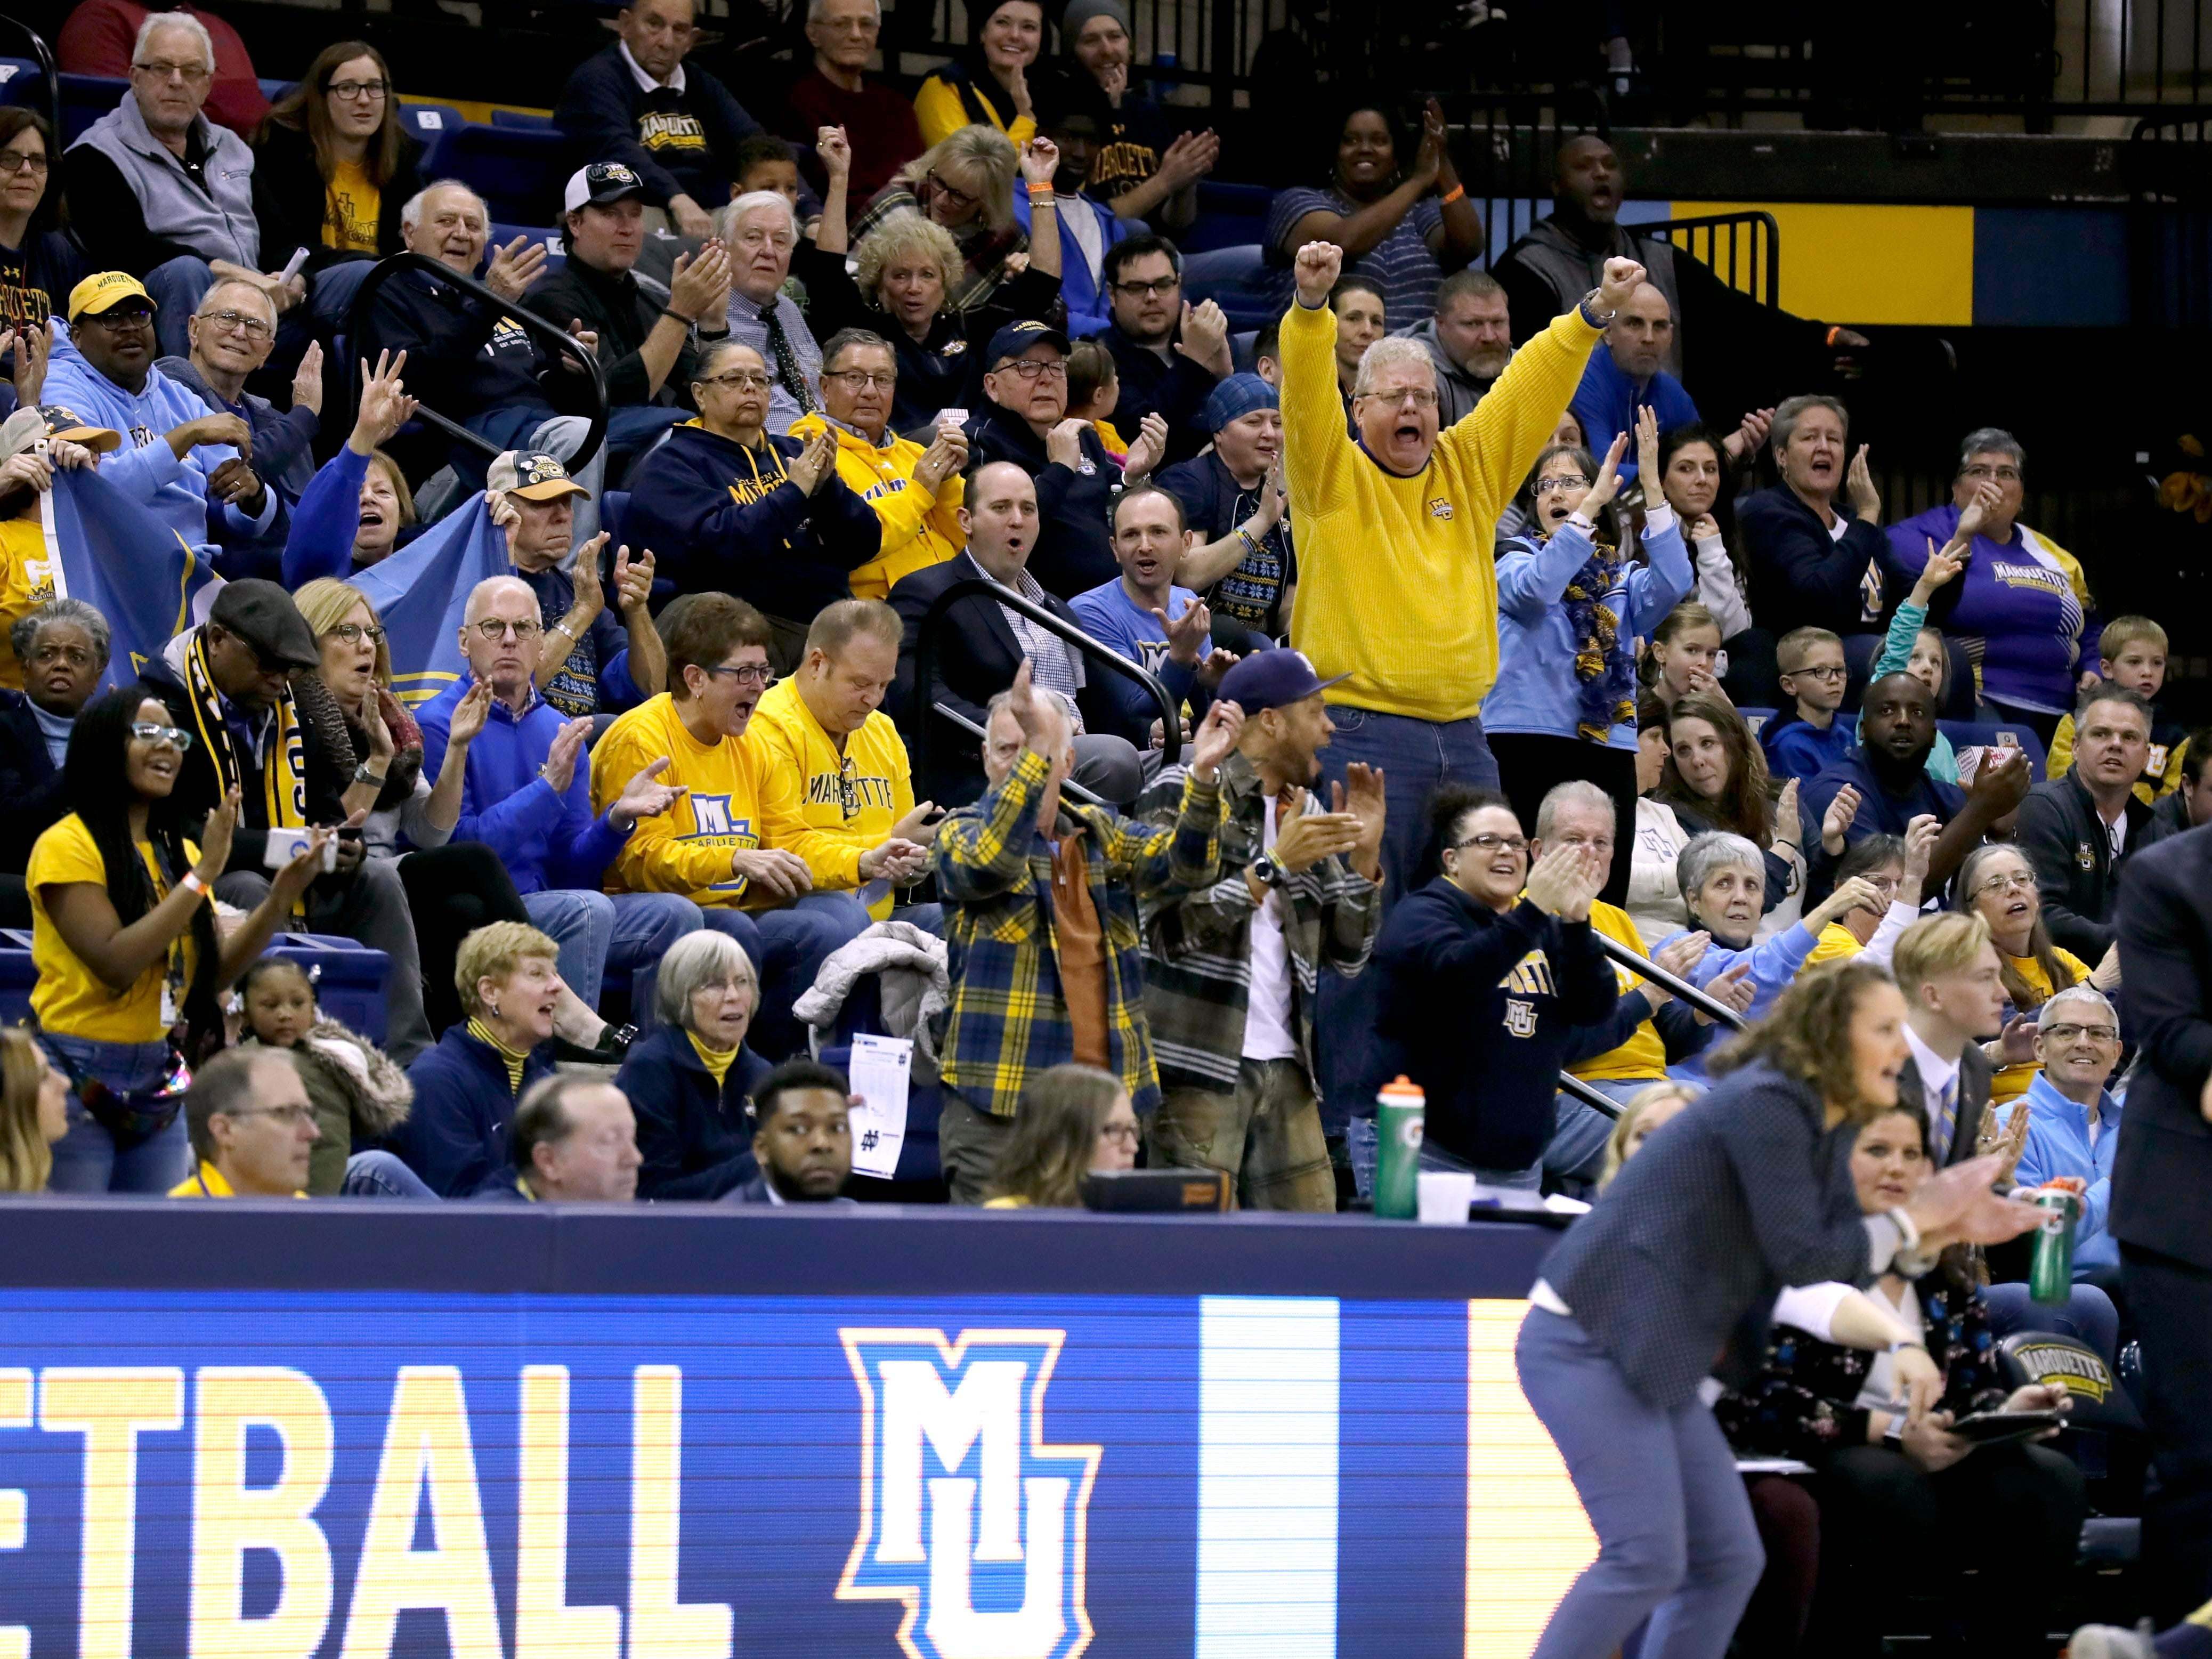 Fans cheer a three-point shot by Marquette Golden Eagles guard Natisha Hiedeman (5) during the women's basketball  game  between Marquette and Notre Dame. Notre Dame, the the defending national champion, which won the game 87-63, is led by former DSHA star Arike Ogunbowale. MU is also a top-25 team expected to win the Big East.   MILWAUKEE JOURNAL SENTINEL/RICK WOOD ORG XMIT: 20097356A